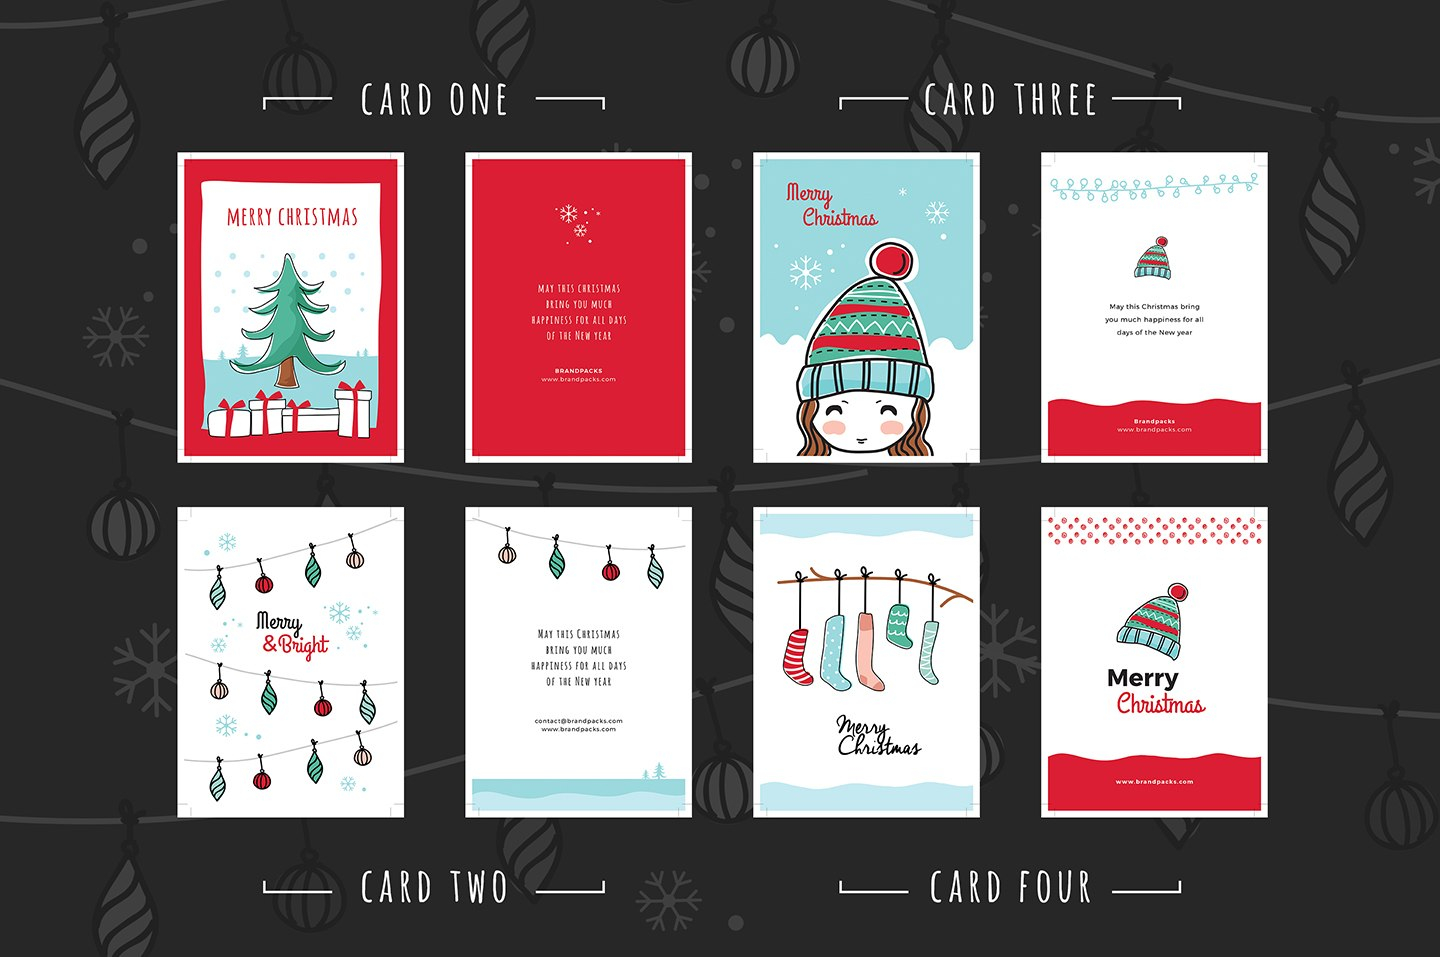 Free Christmas Card Templates For Photoshop  Illustrator  Brandpacks Throughout Free Christmas Card Templates For Photoshop